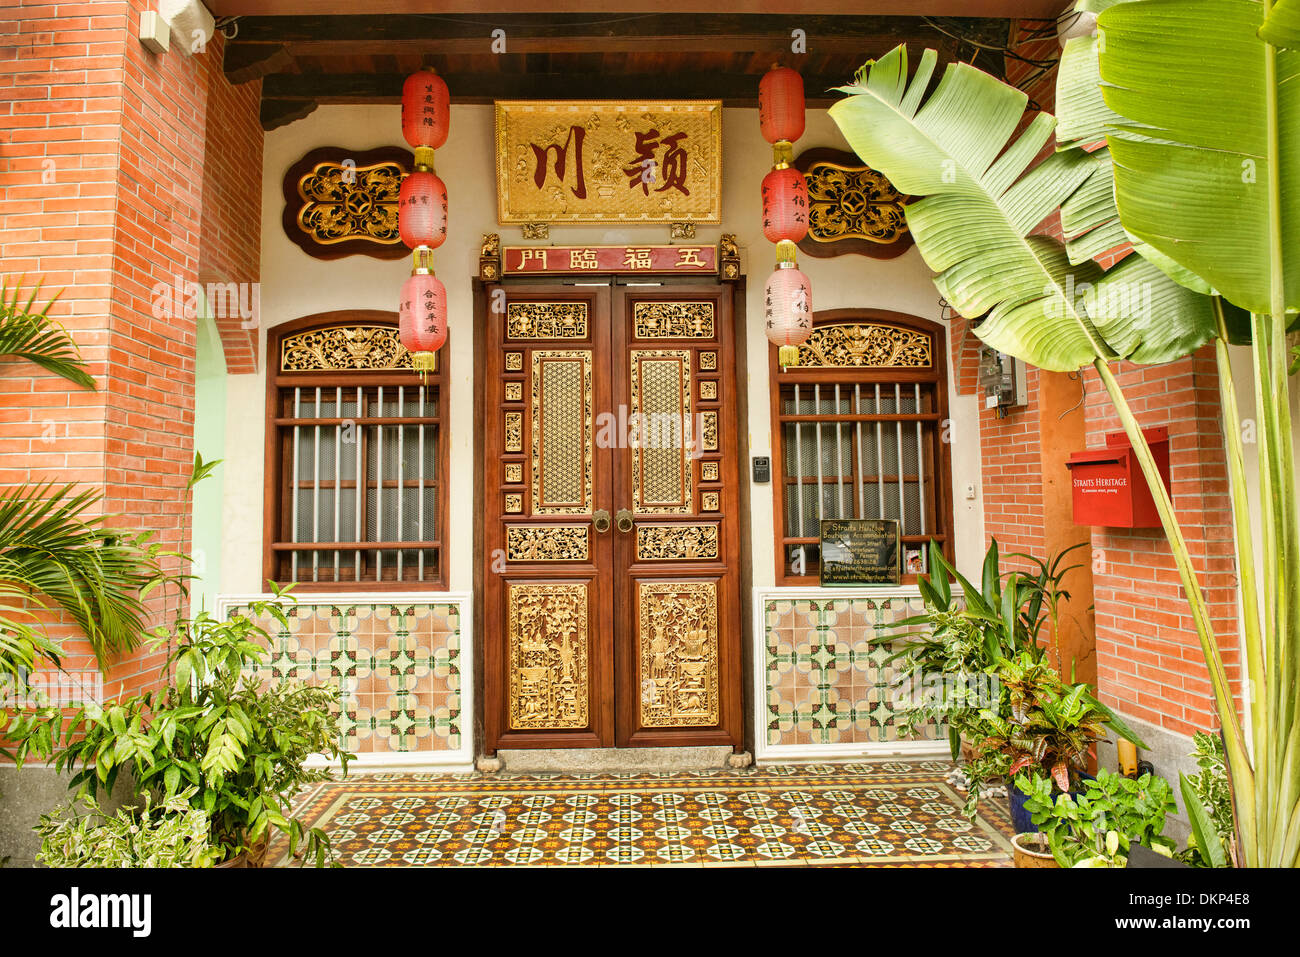 Traditional Chinese shop houses in the UNESCO World Heritage zone of Georgetown in Penang, Malaysia - Stock Image